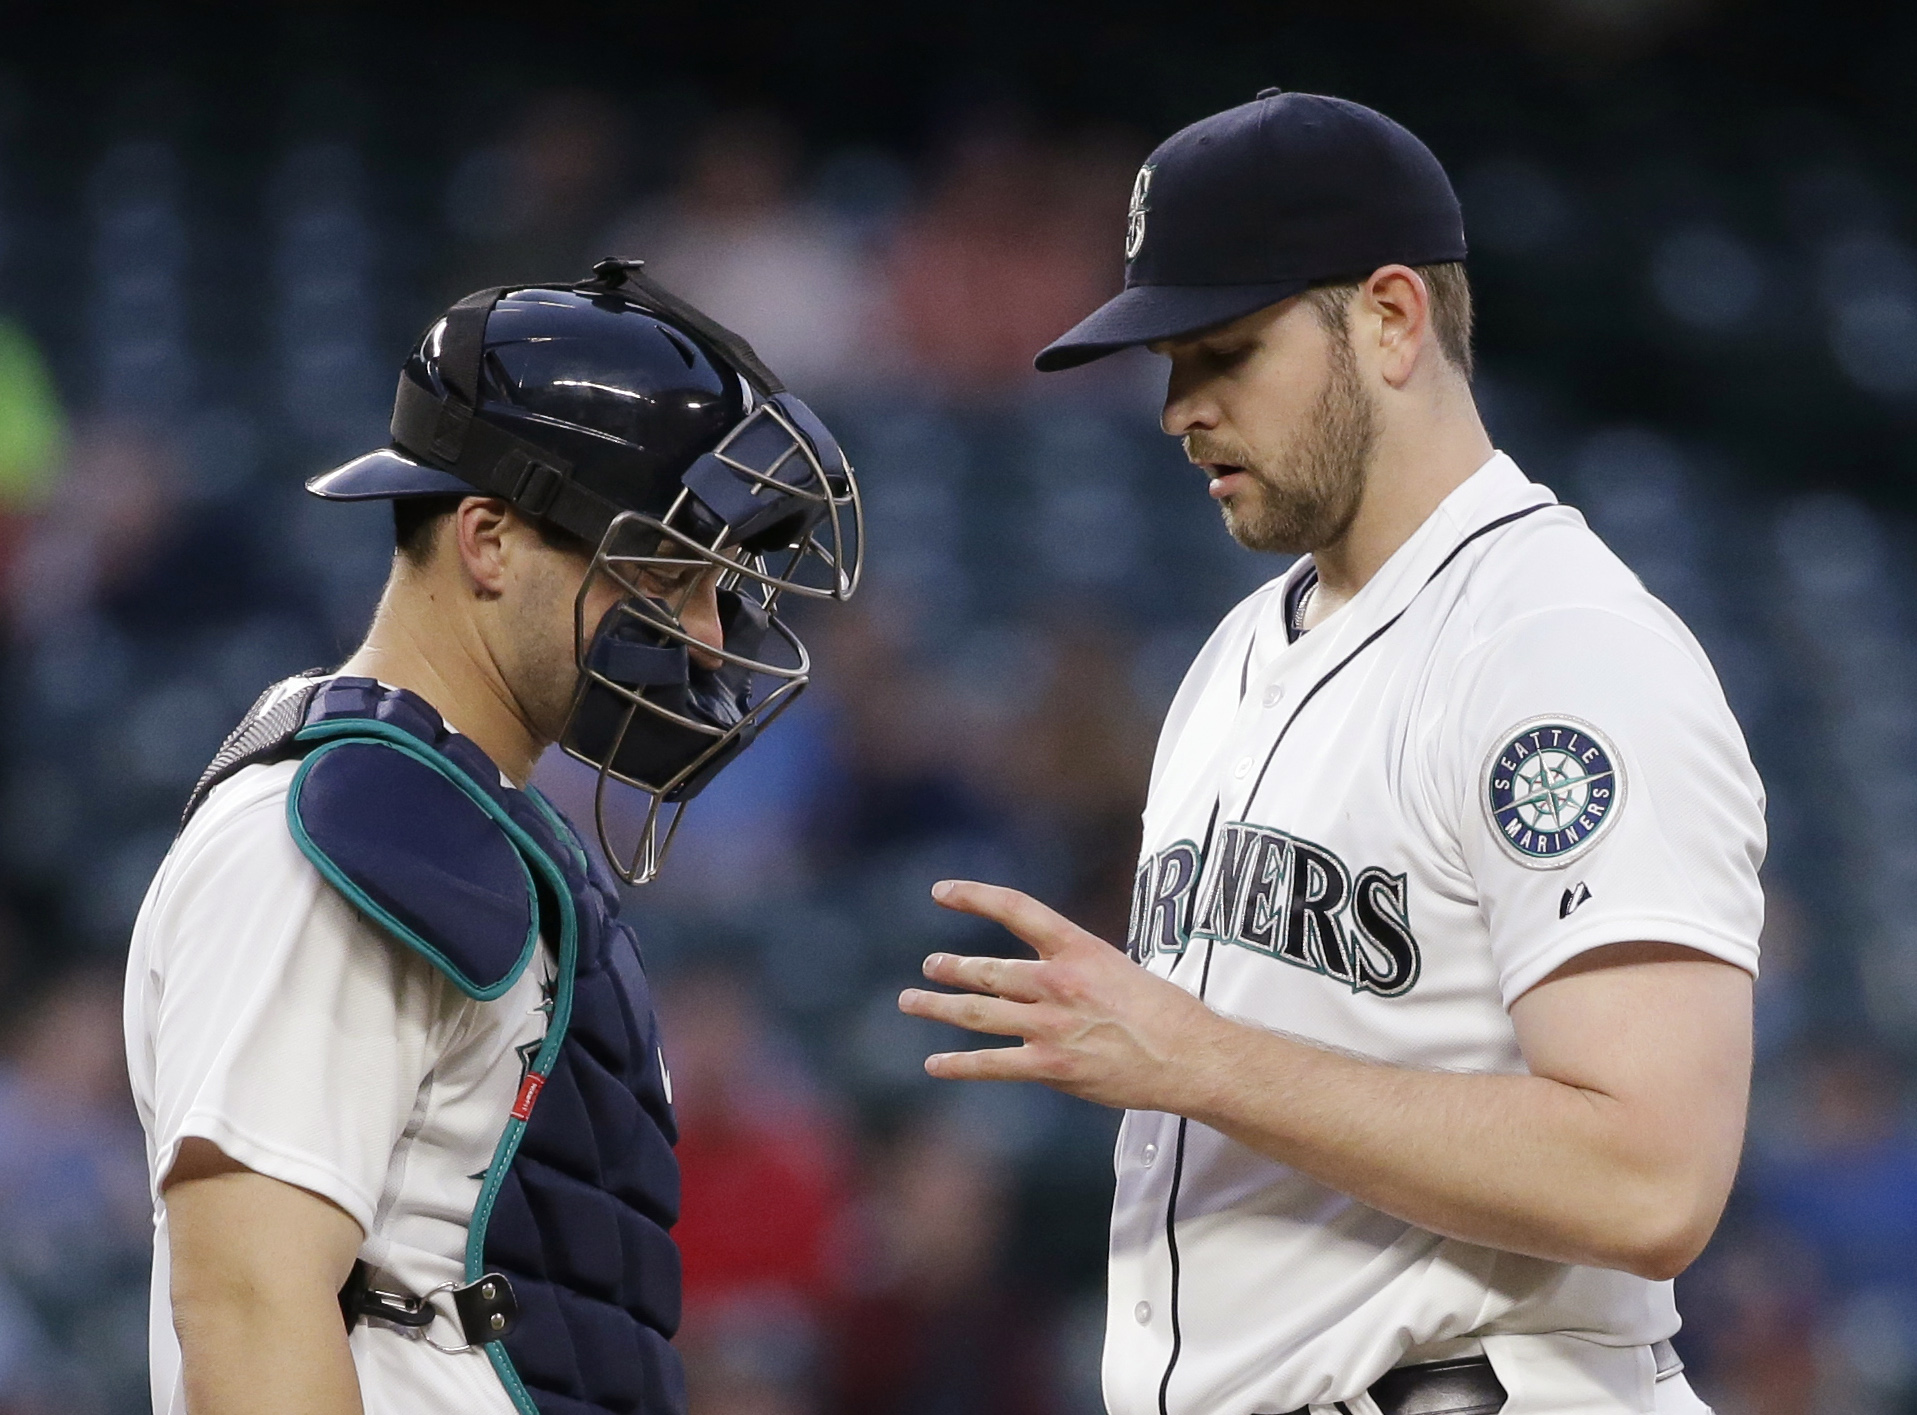 Seattle Mariners catcher Mike Zunino, left, and starting pitcher James Paxton looks at Paxton's pitching hand in the fifth inning of a baseball game againdy the Cleveland Indians on Thursday, May 28, 2015, in Seattle. Paxton came out of the game. (AP Phot